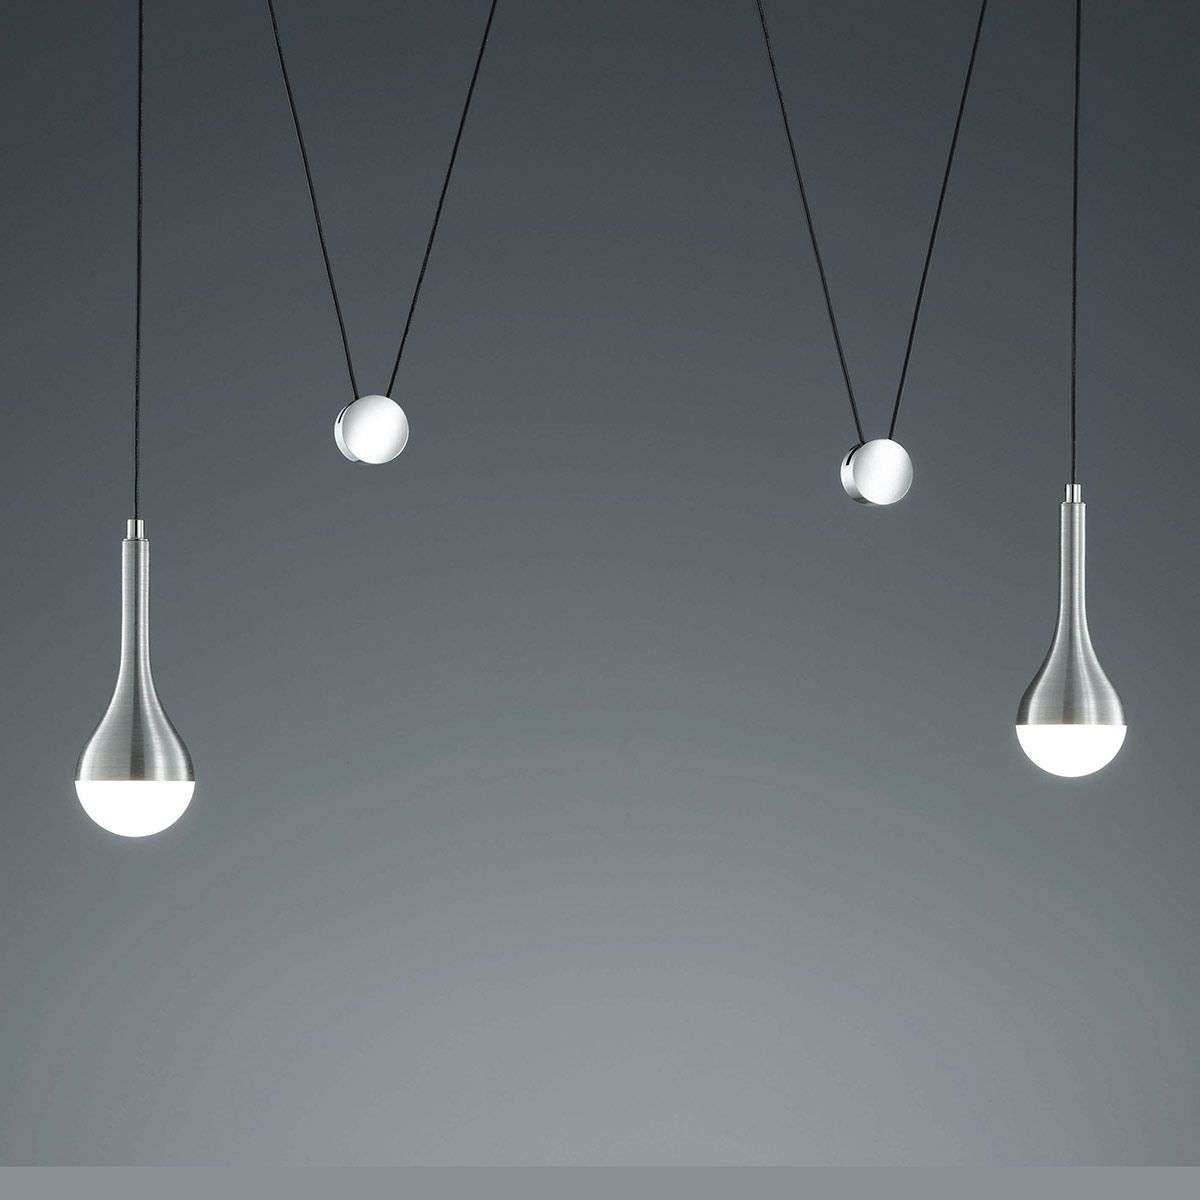 Height adjustable led pendant light drop lights height adjustable led pendant light drop mozeypictures Gallery